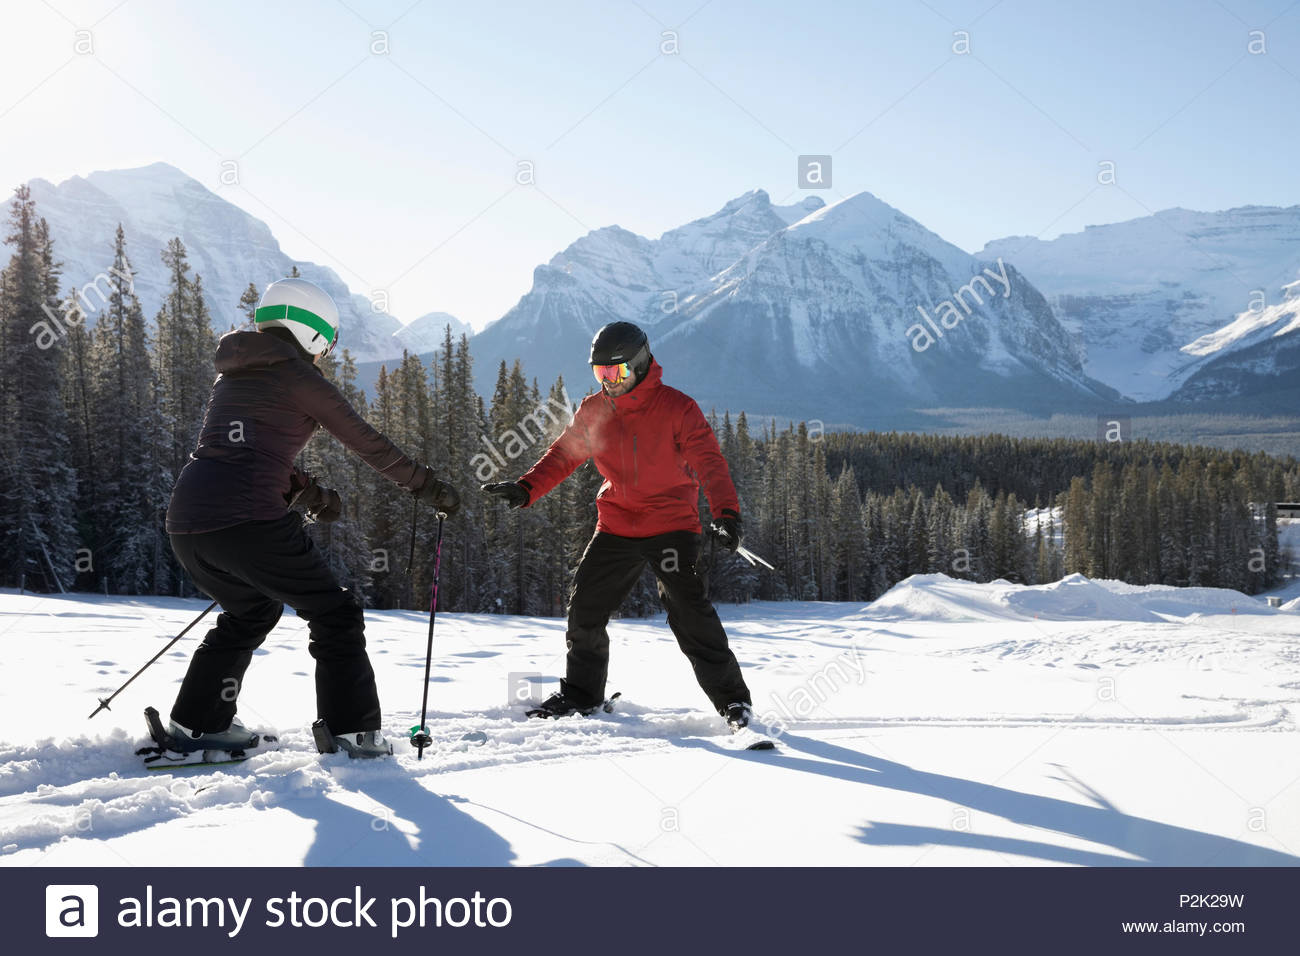 Woman receiving ski lesson from ski resort instructor - Stock Image